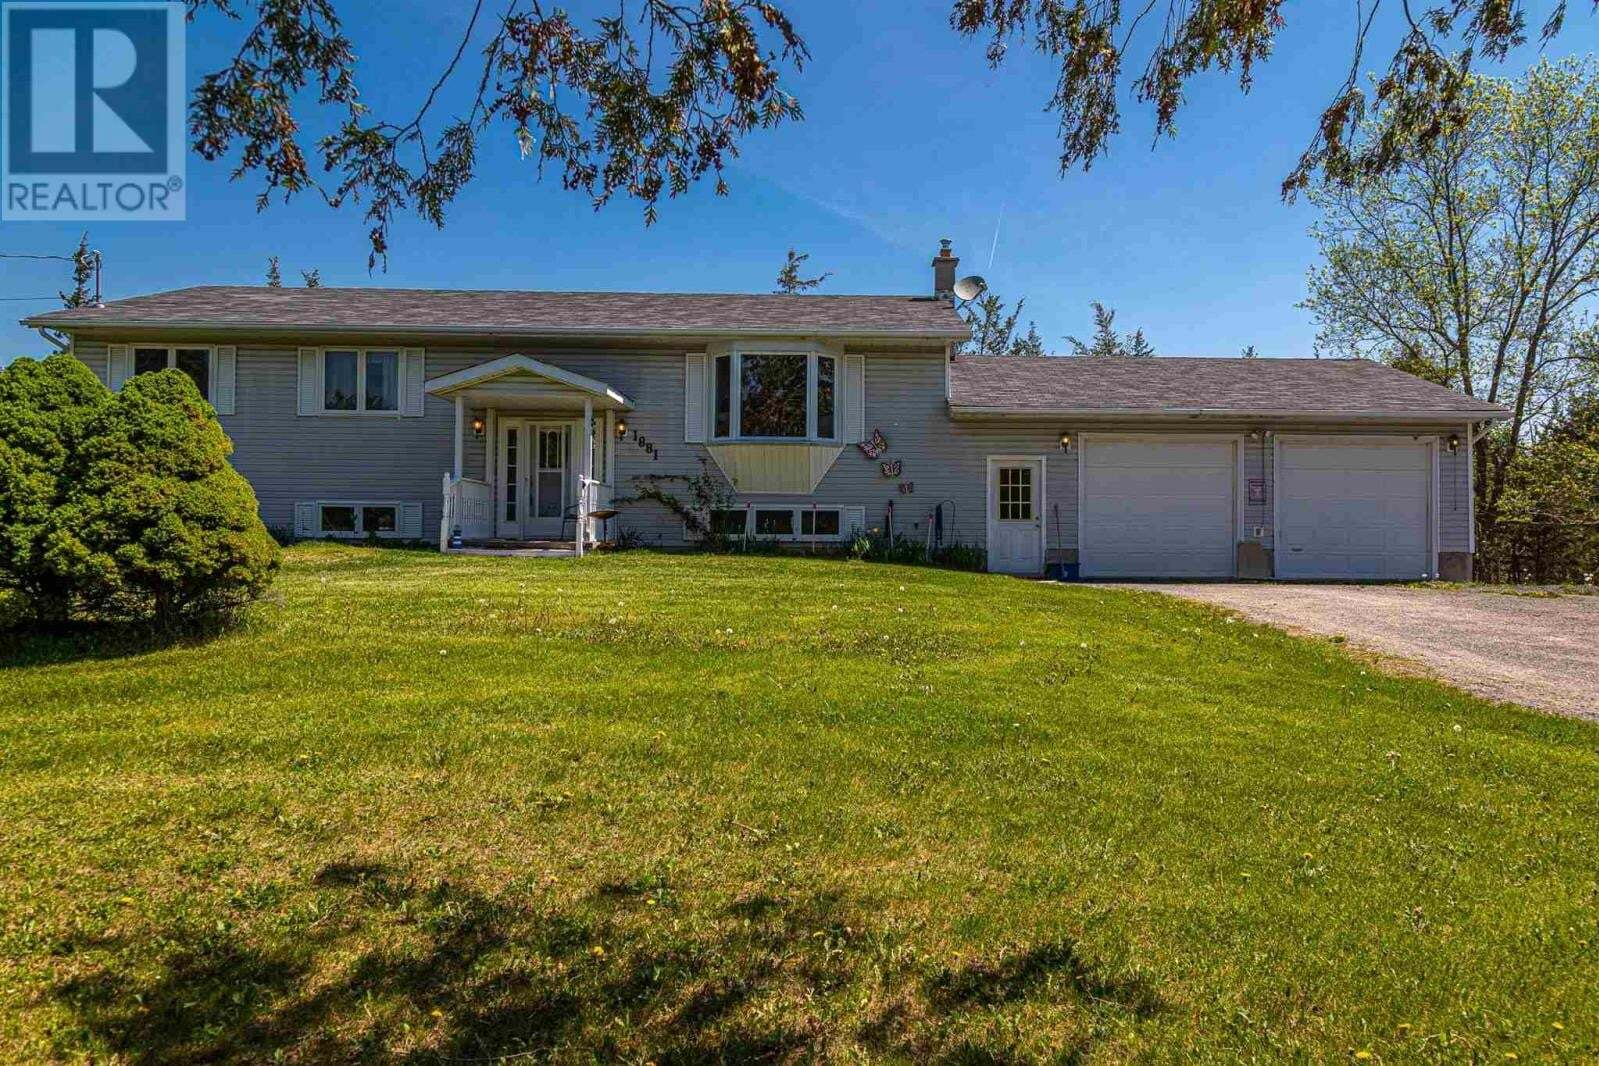 House for sale at 1881 Thorpe Rd Odessa Ontario - MLS: K20002768